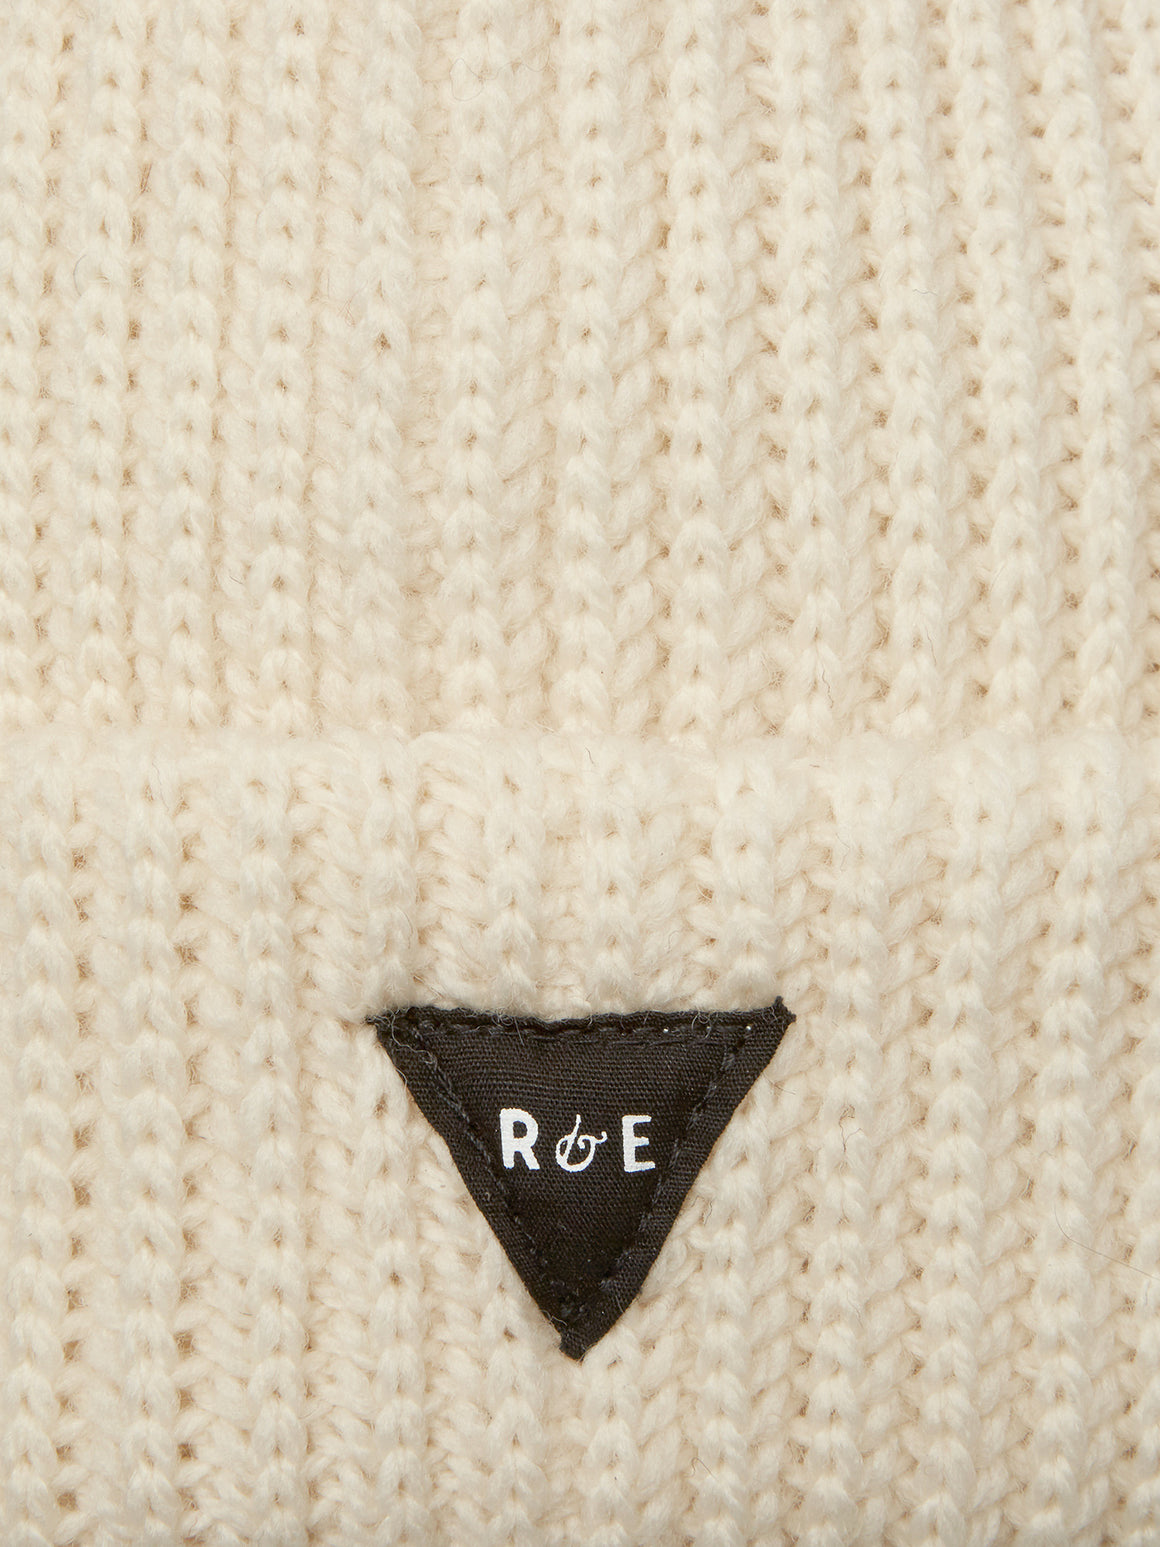 British Wool Chunky Commando Beanie | Made in England British Knits | Realm & Empire British Menswear